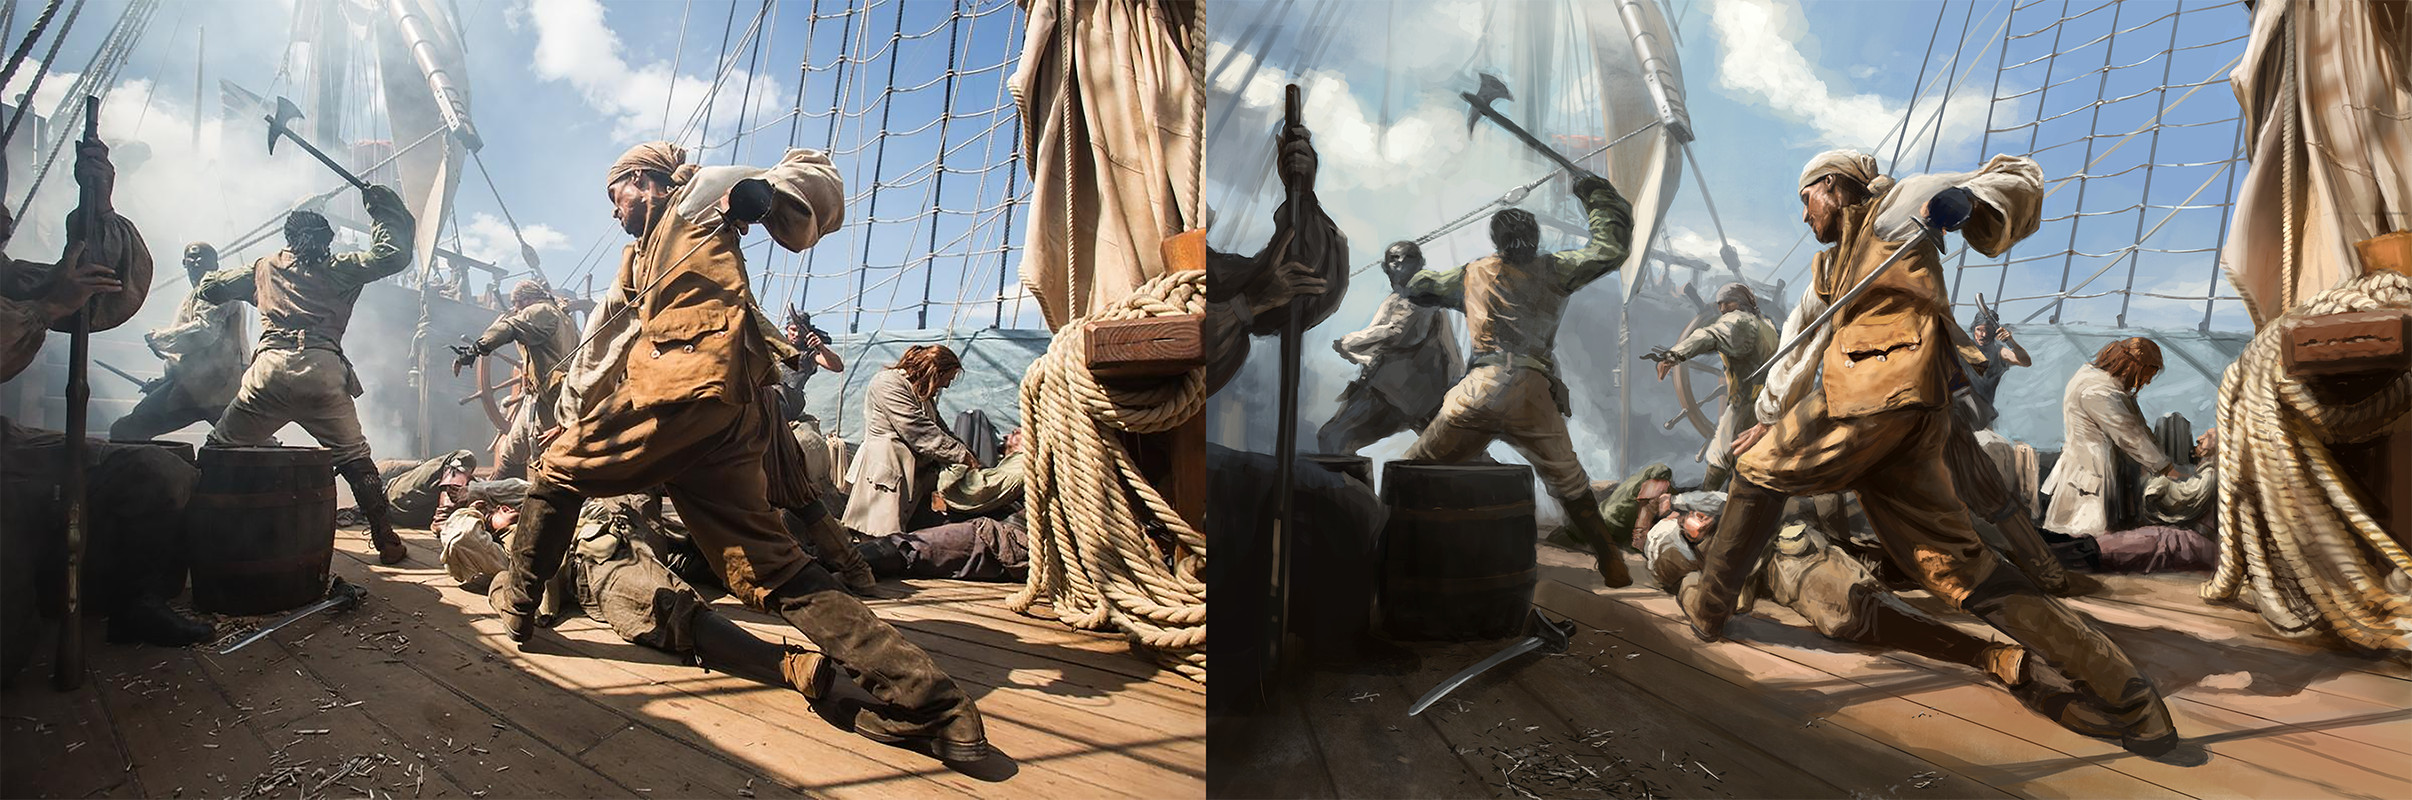 film/TV still study (from that tv show black sails - wanted a challenge with many figures etc. - was hard!)